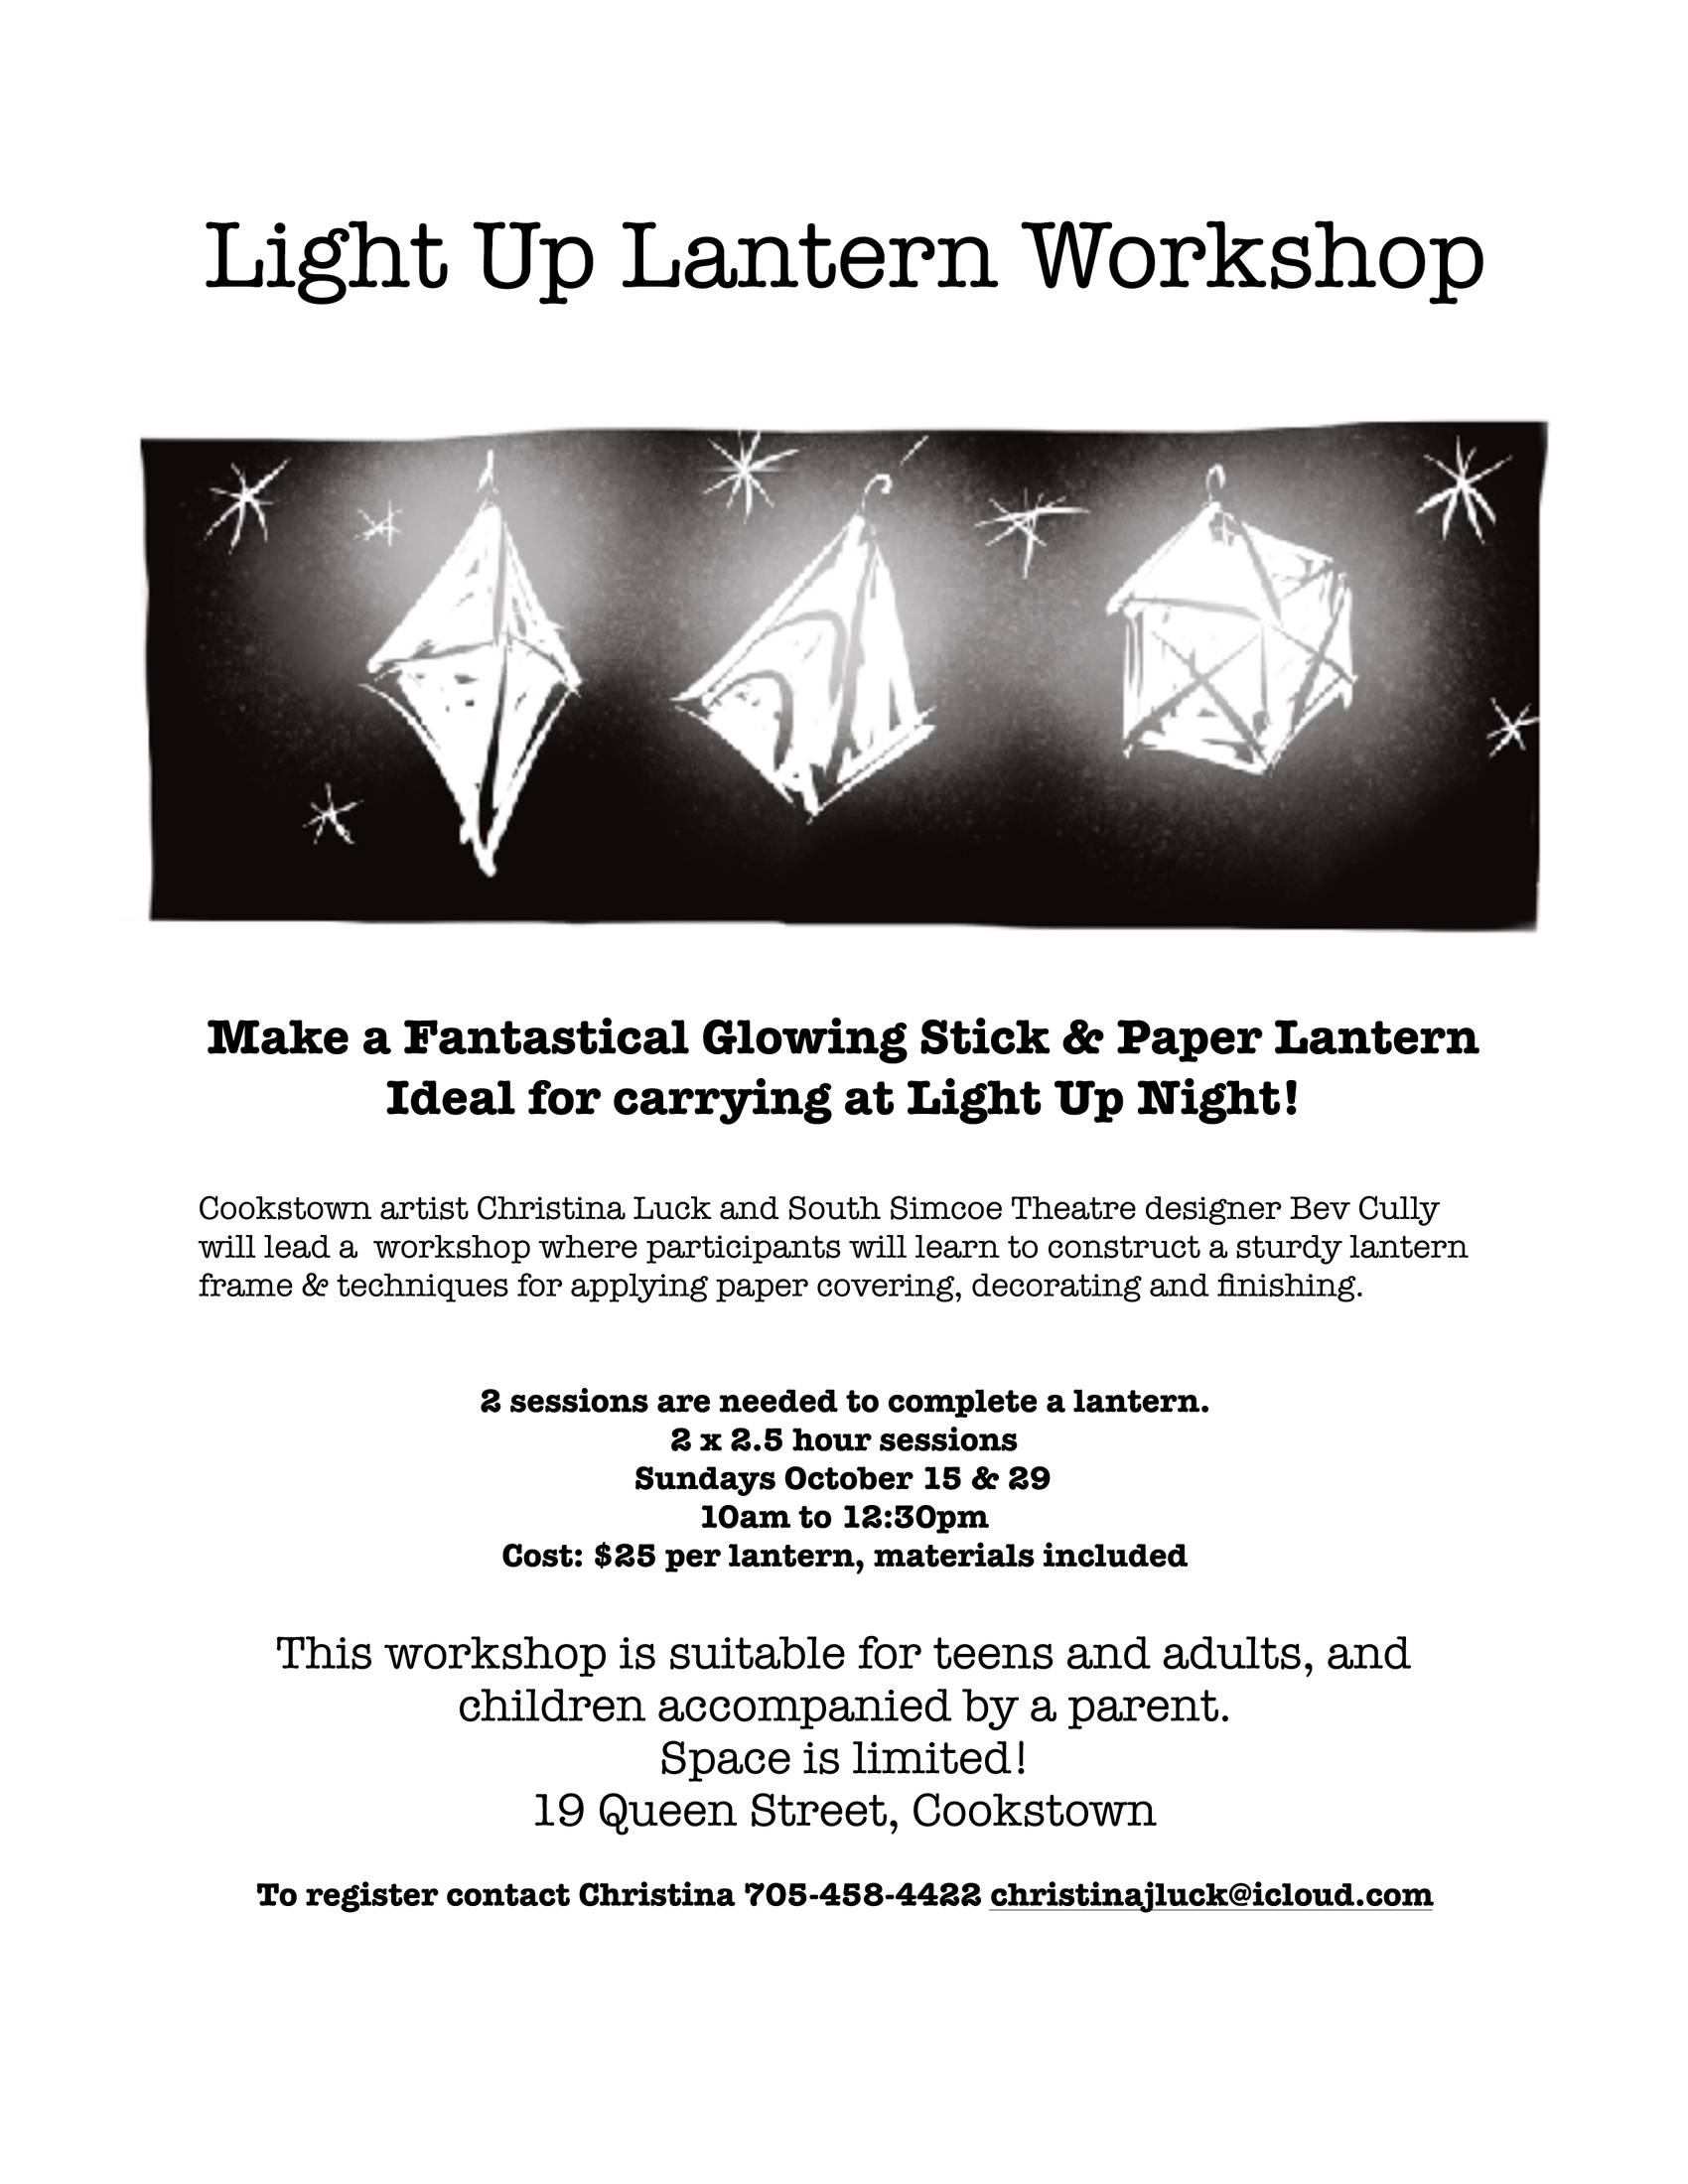 Paper Lantern Workshop, Cookstown artist Christina Luck, South Simcoe Theatre, Bev Cully,